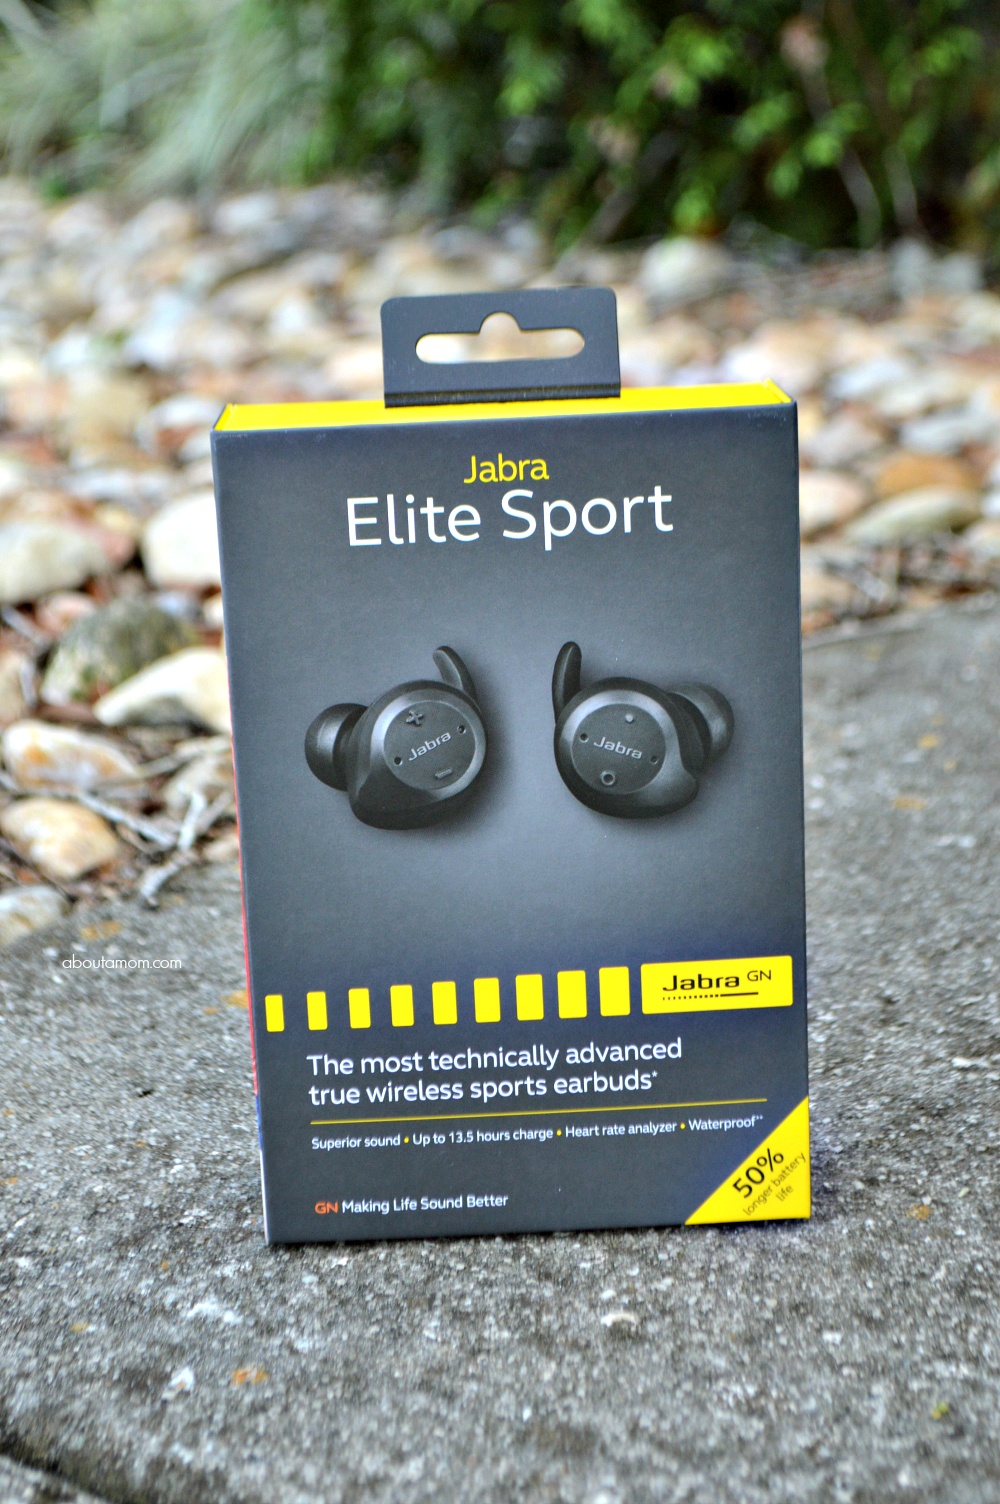 The Jabra Elite Sport Upgraded truly wireless fitness tracking earbuds combine comfort and function, featuring in-ear heart rate monitor, VO2 Max fitness testing and more.